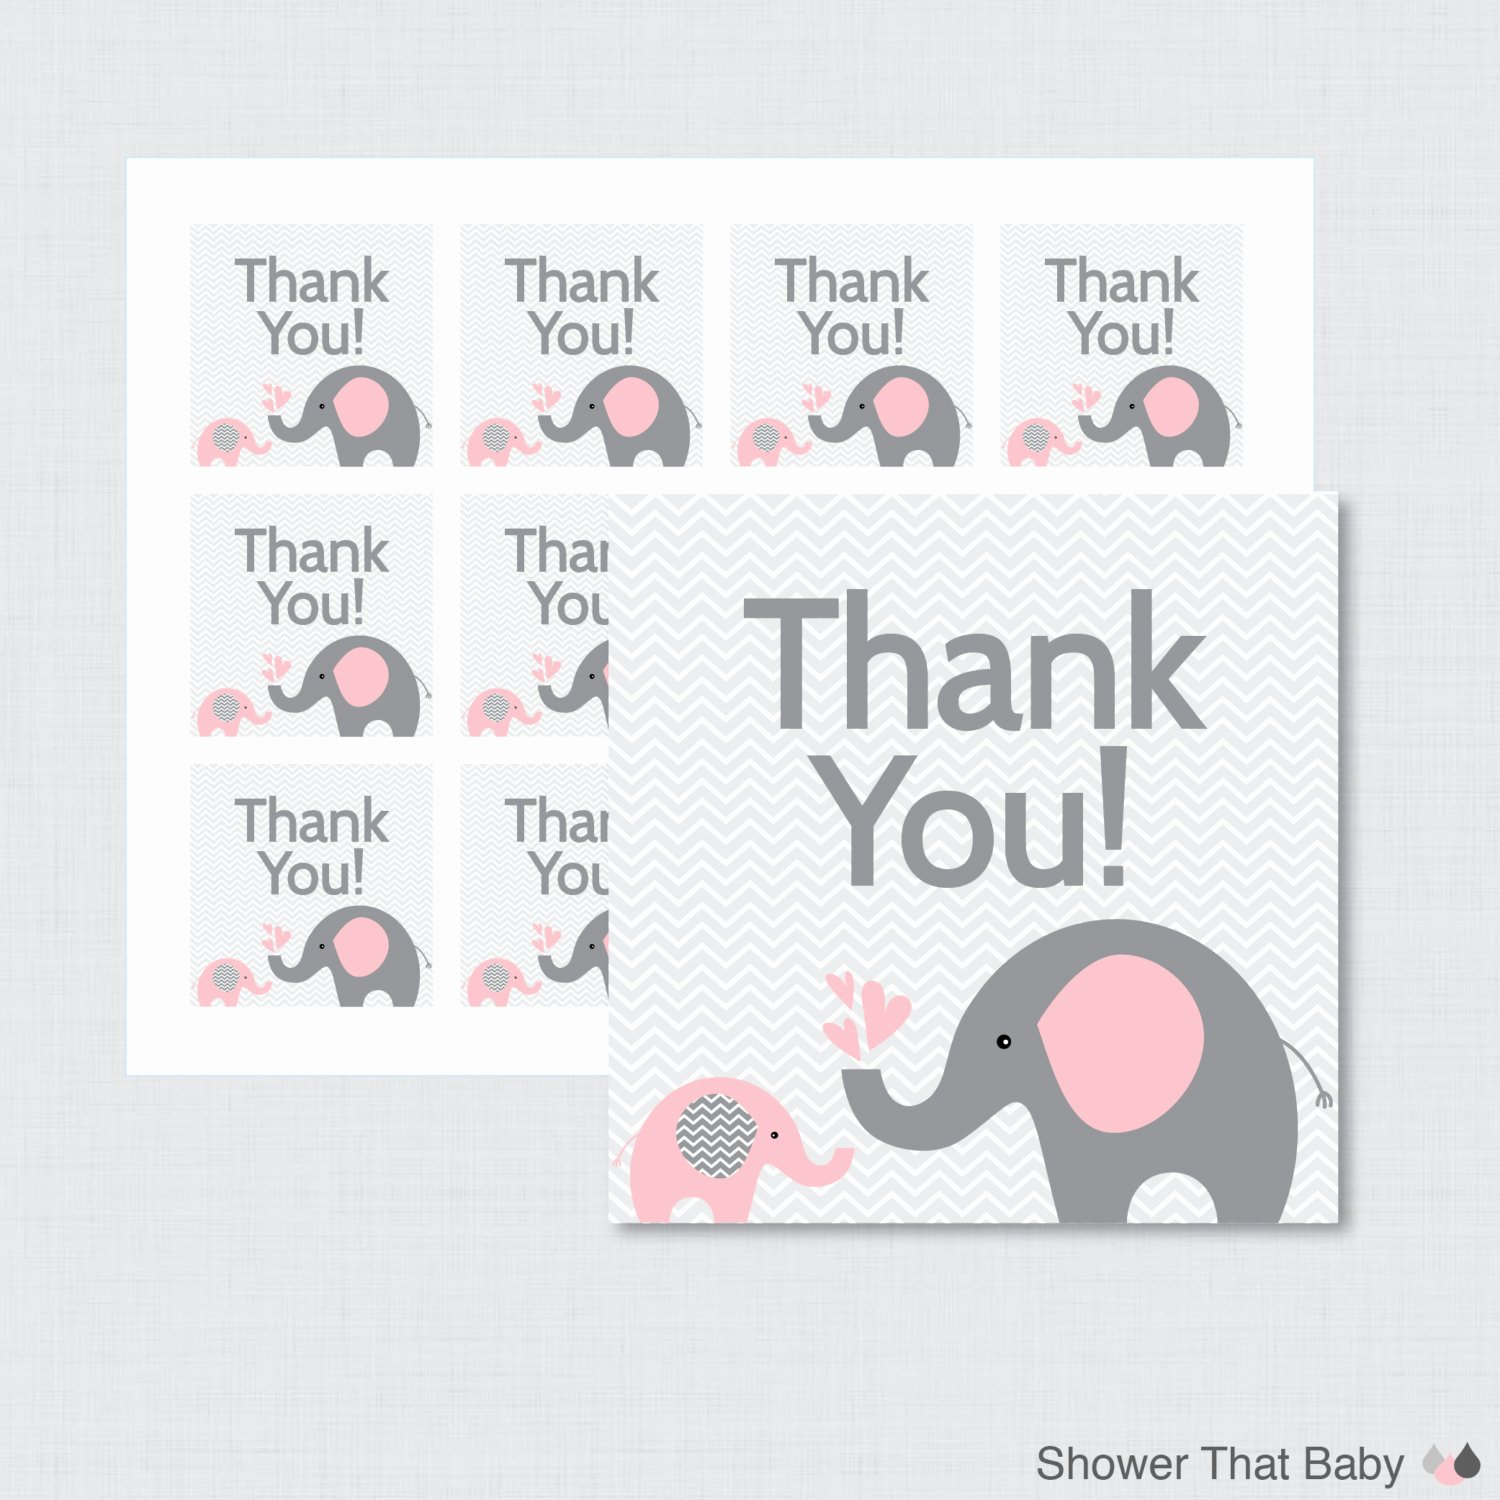 Printable Baby Shower Tags Lovely Printable Elephant Baby Shower Favor Tags Thank You Tag for